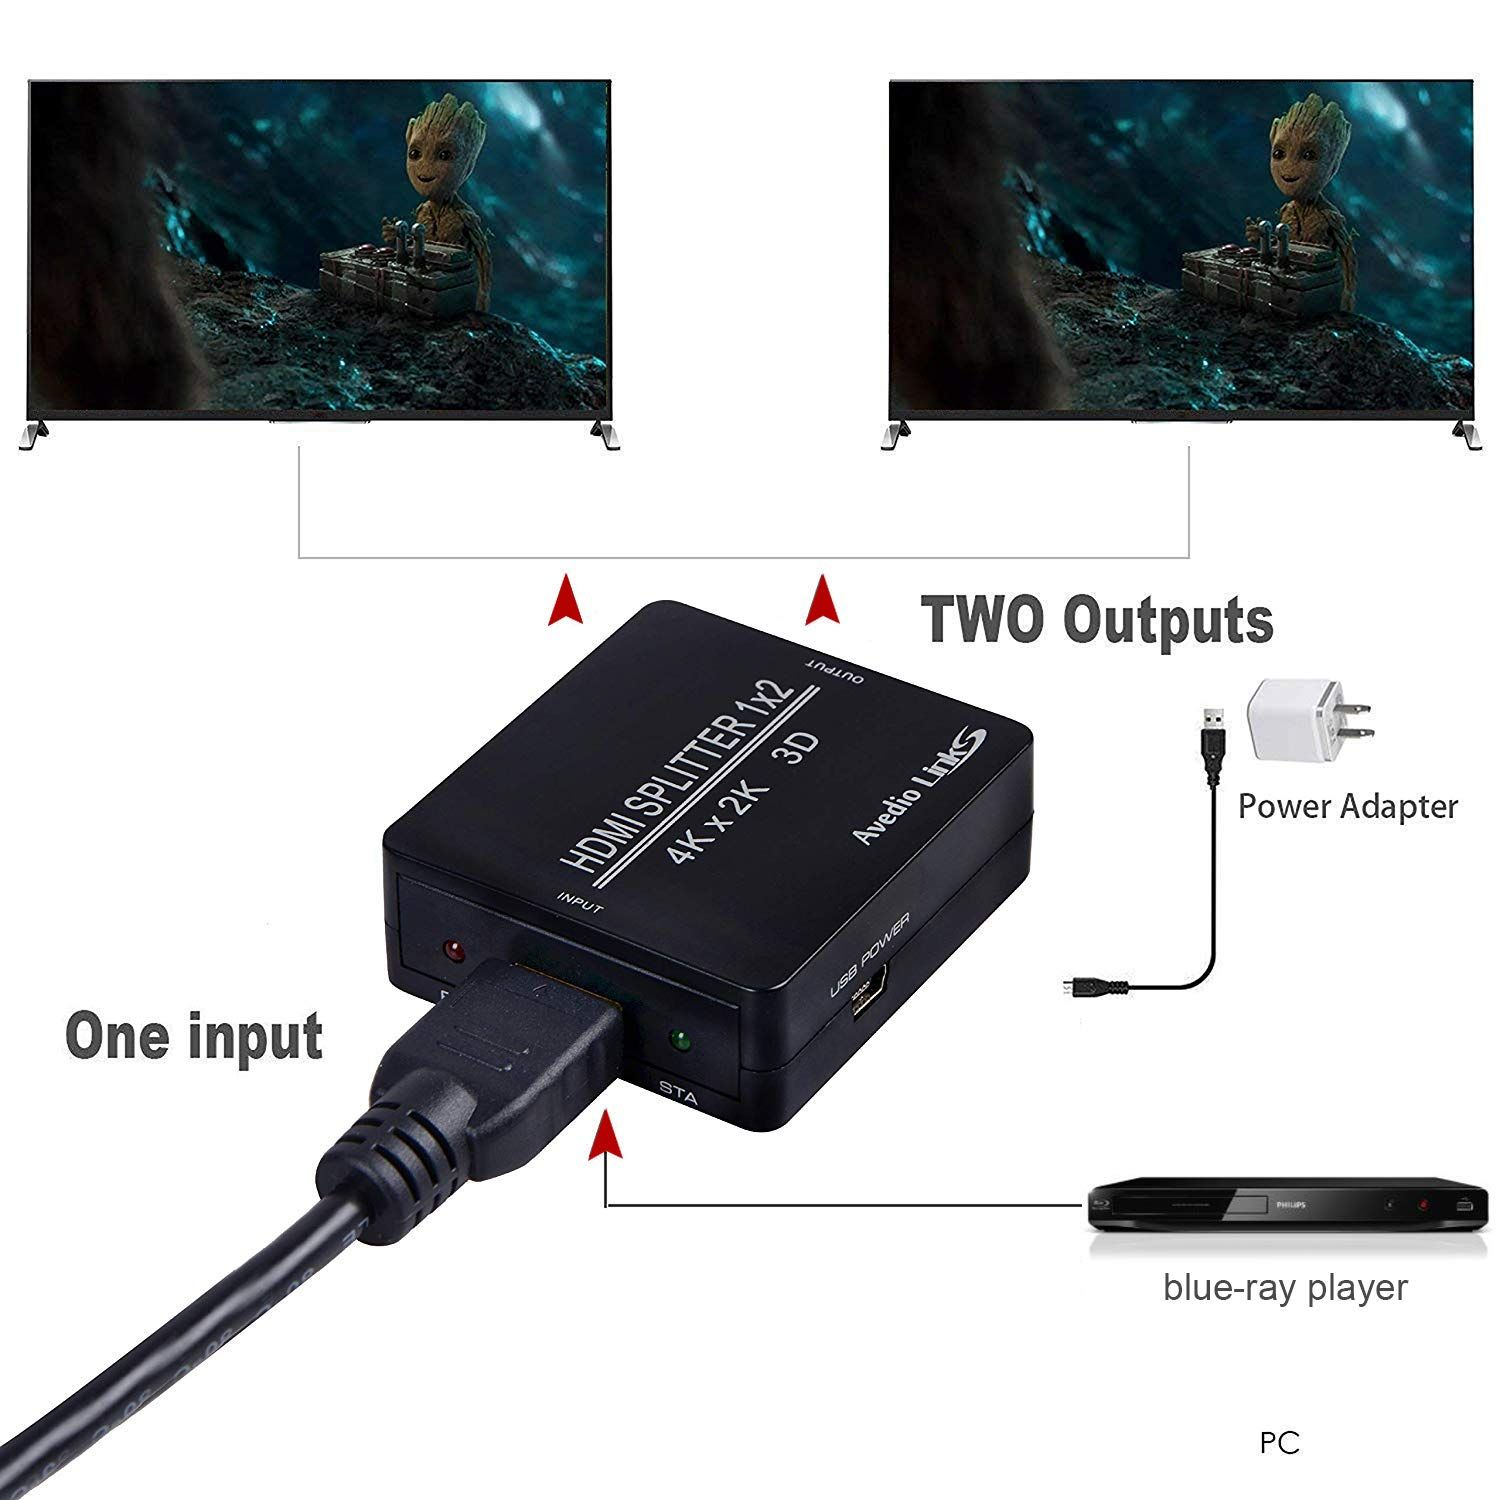 HDMI Splitter 1 in 2 Out,avedio links 4K HDMI Splitter 1x2